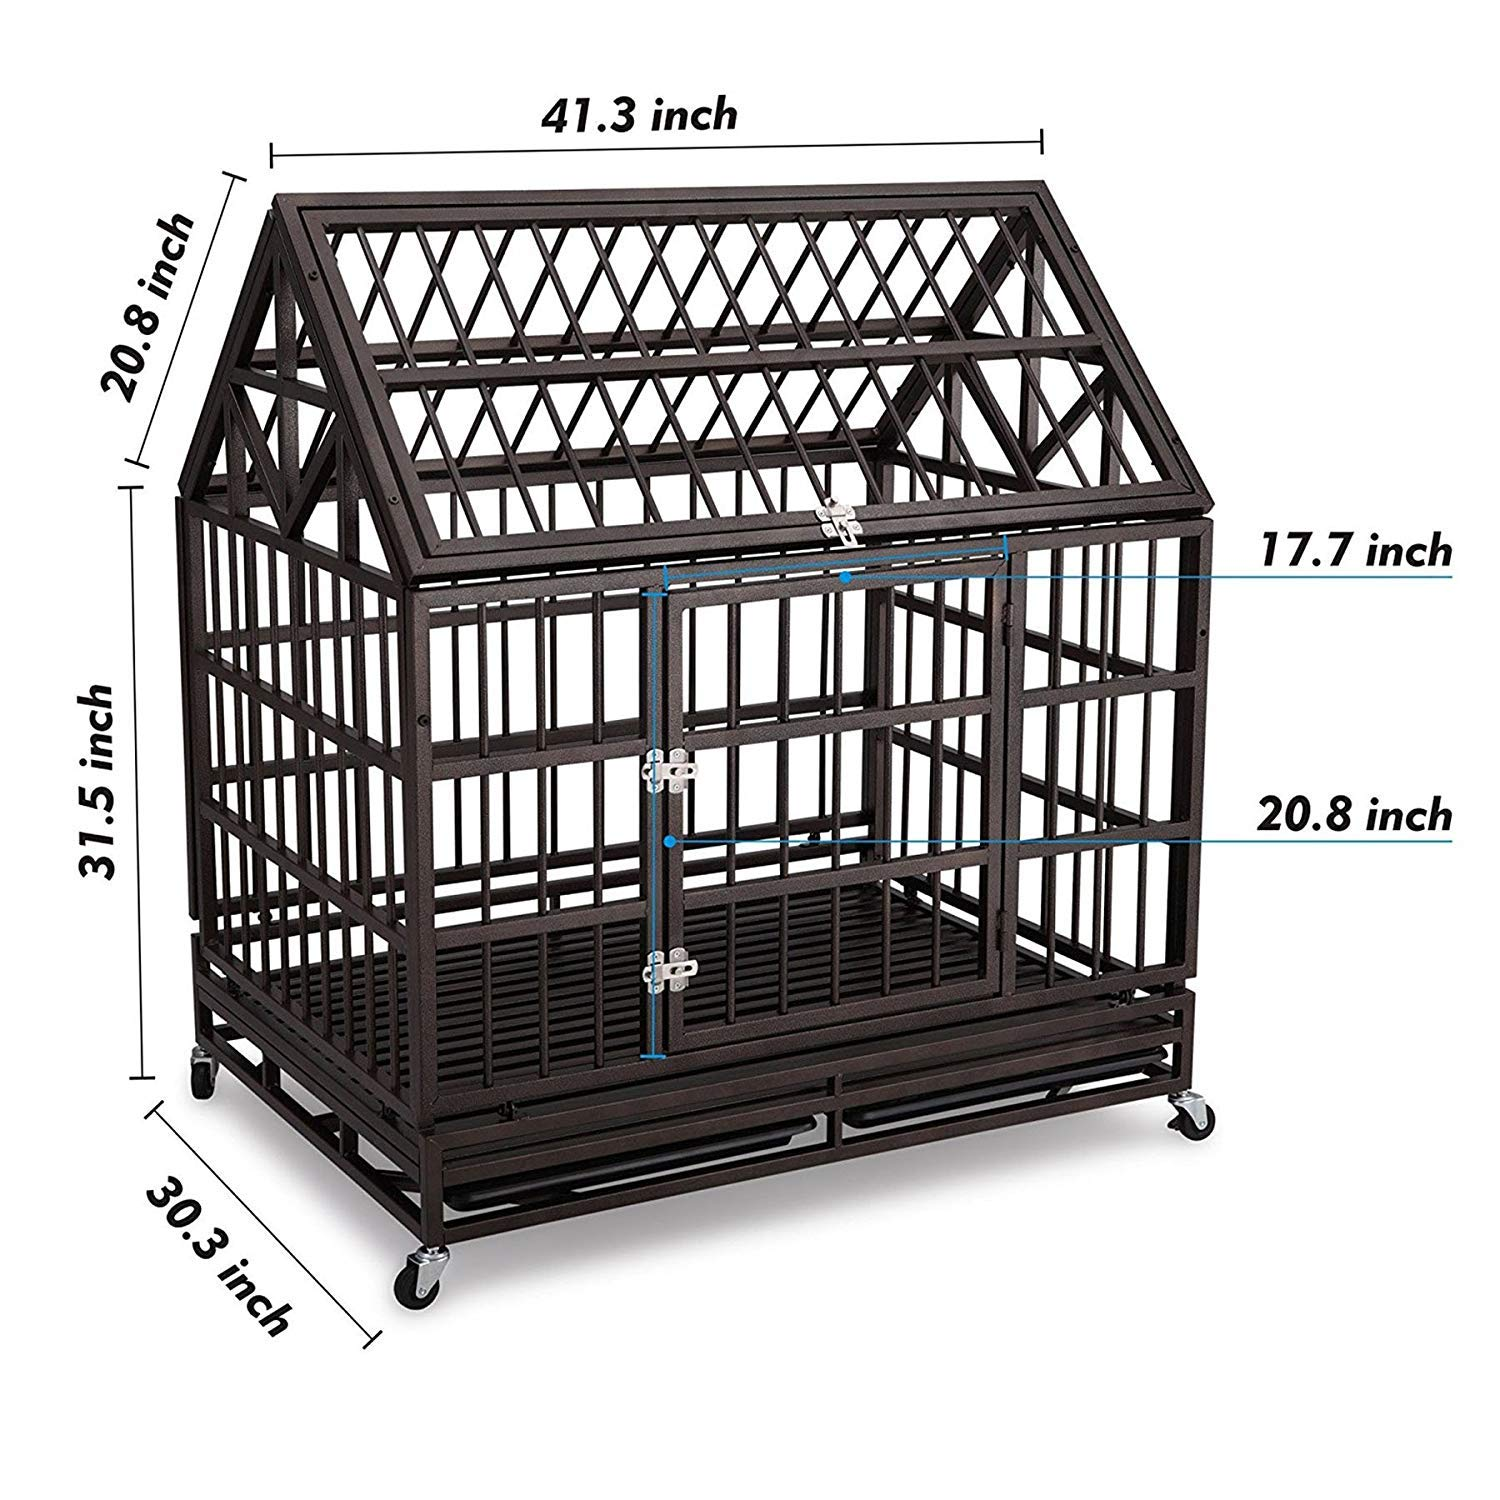 Haige Pet Your Pet Nanny Heavy Duty Dog Crate Cage Kennel Strong Metal for Large Dogs, Easy to Assemble Pet Playpen with Patent Lock & Four Wheels by Haige Pet Your Pet Nanny (Image #2)